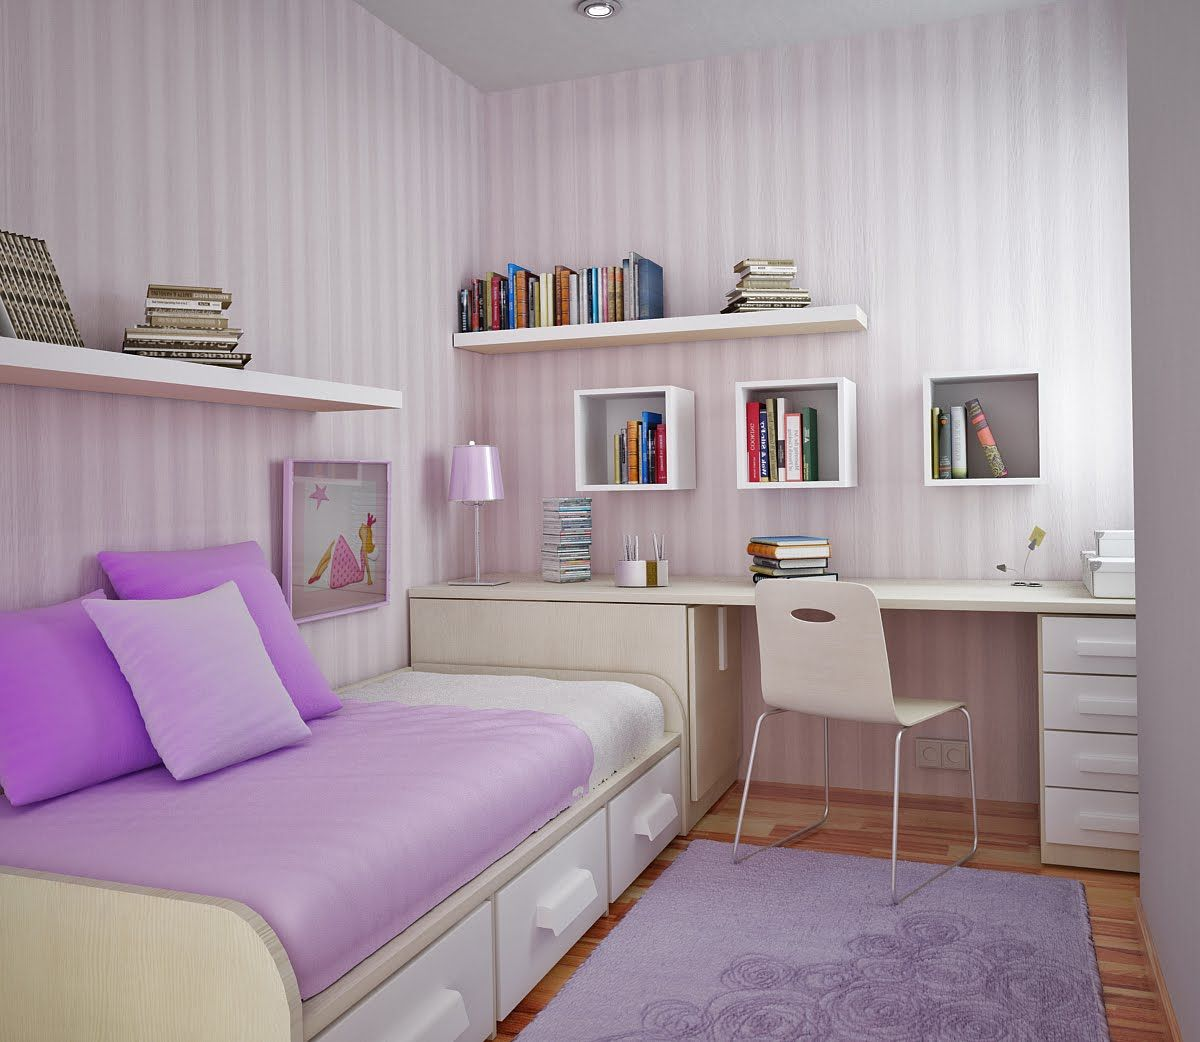 Small Kids Bedroom Layout Ideas Part - 36: Space Saving Ideas For Small Kids Rooms From Sergi Mengot: Lilac Small